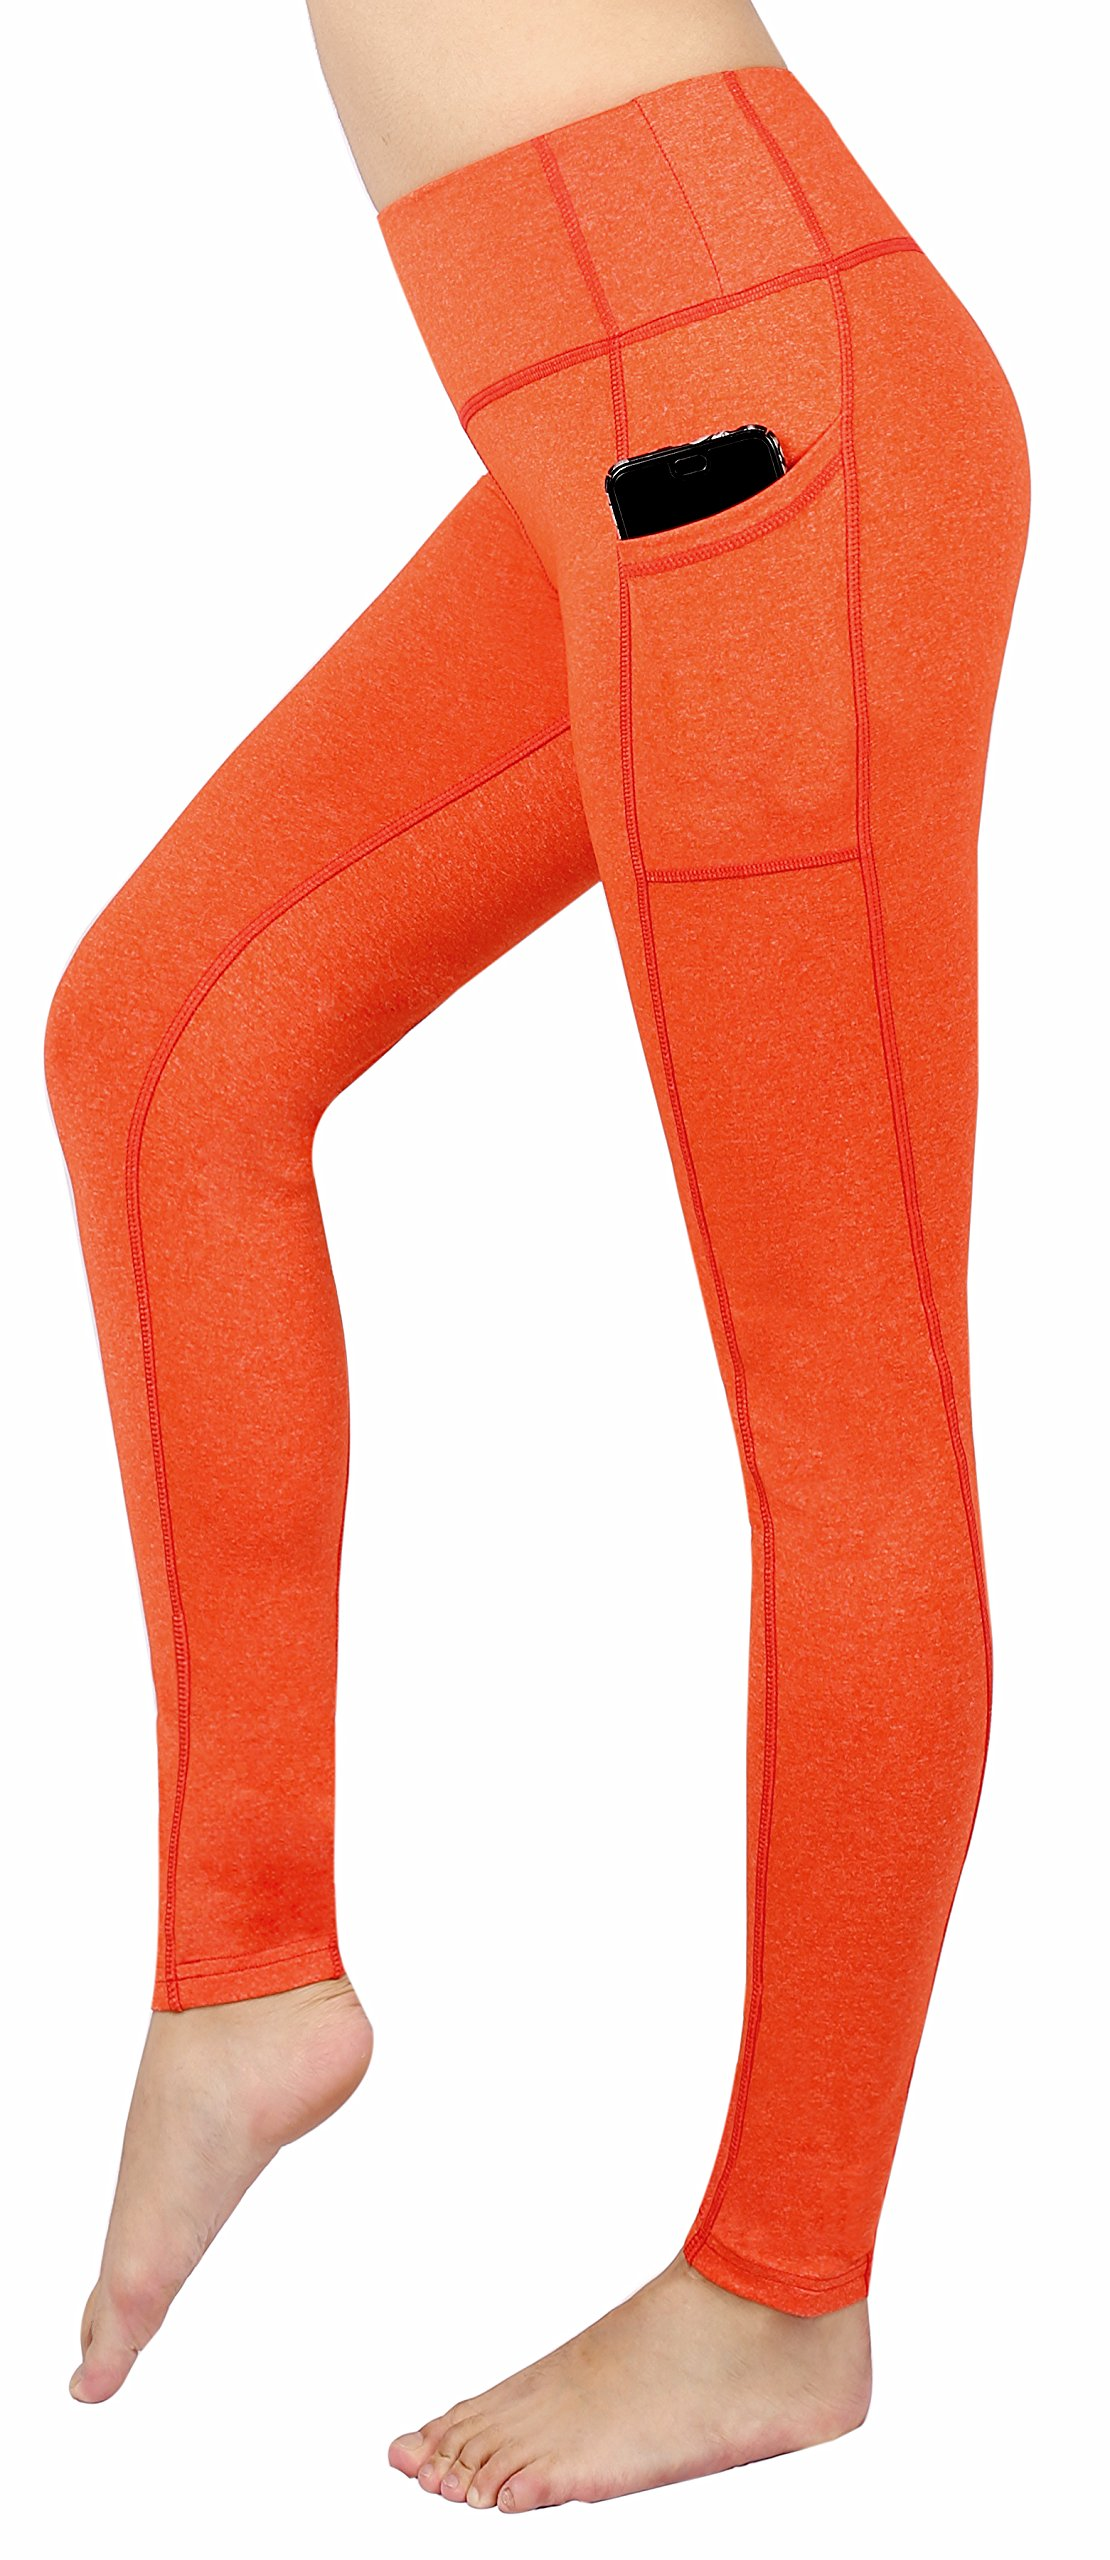 4a535db80b4 Neonysweets Women's Workout Leggings with Pocket Running Yoga Pants Orange S